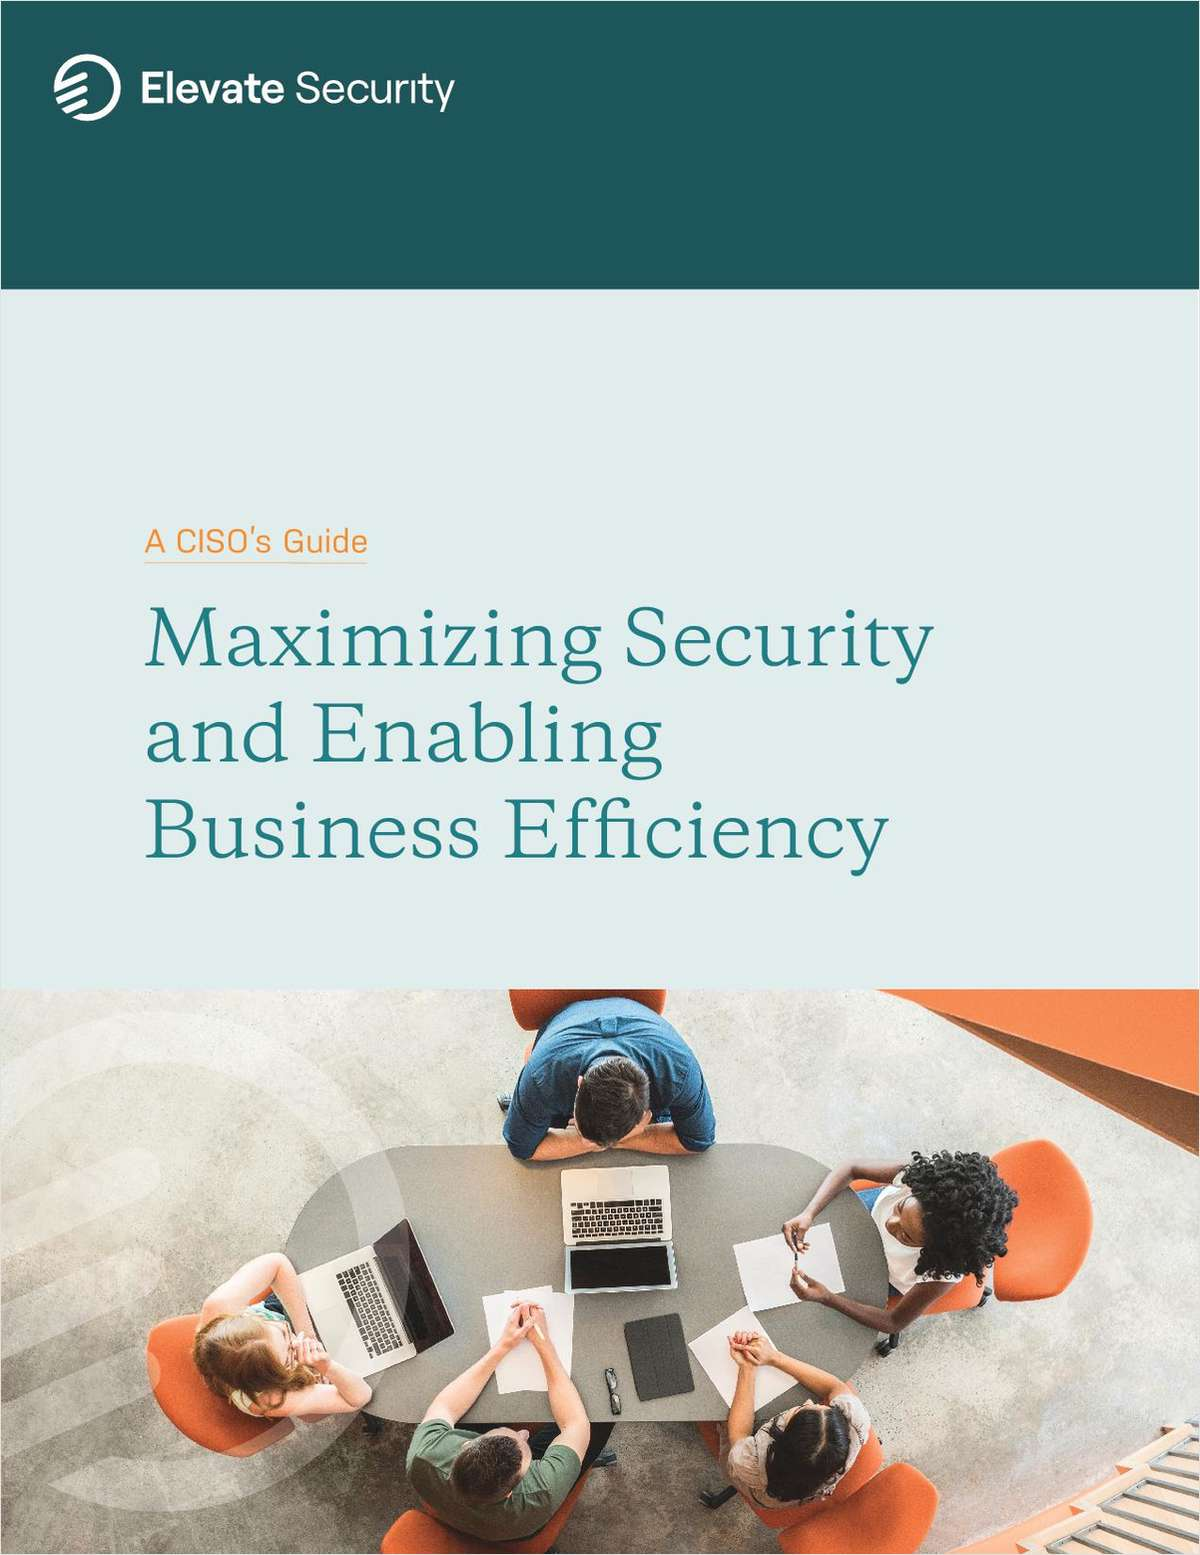 A CISOs Guide: Maximizing Security and Enabling Business Efficiency